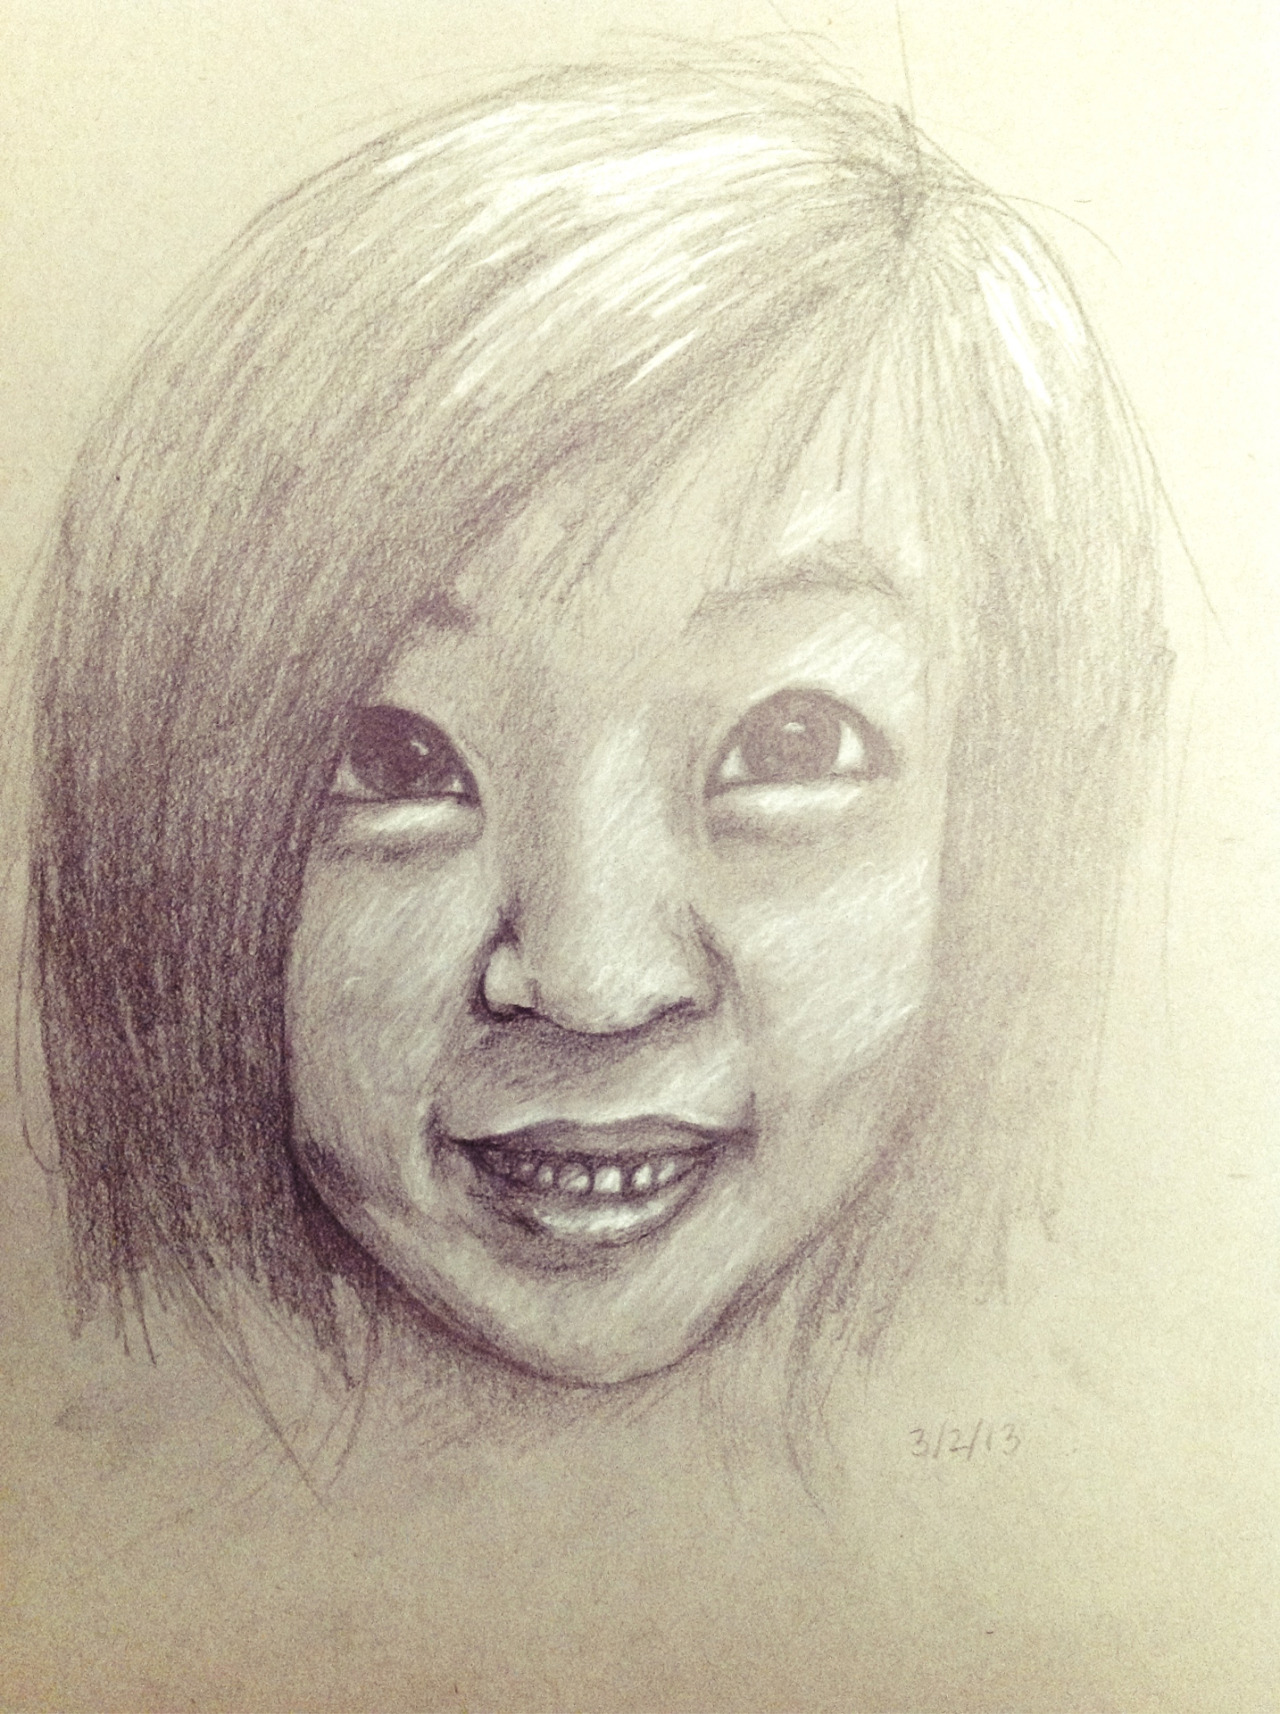 First self-portrait in.. years? My nose is too short :(